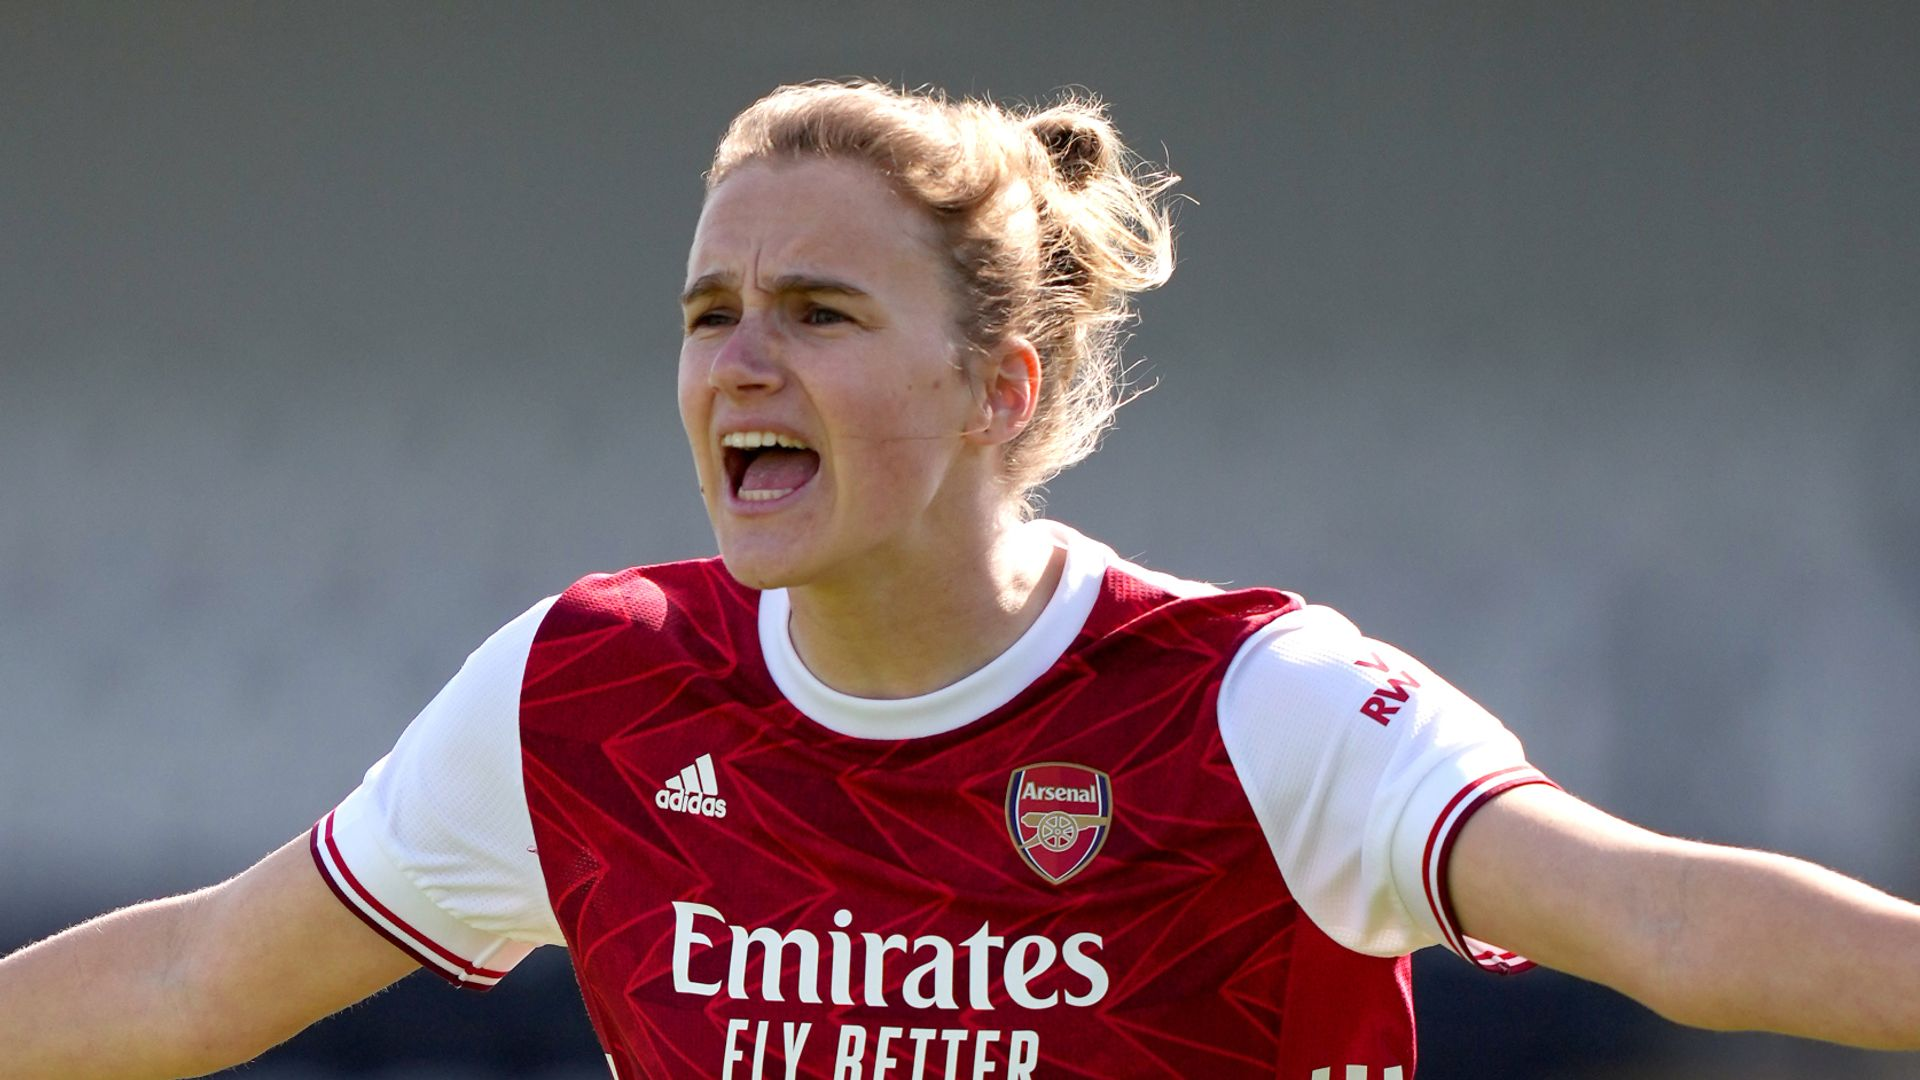 Vivianne Miedema: Joe Montemurro expects Arsenal Women striker to stay for next